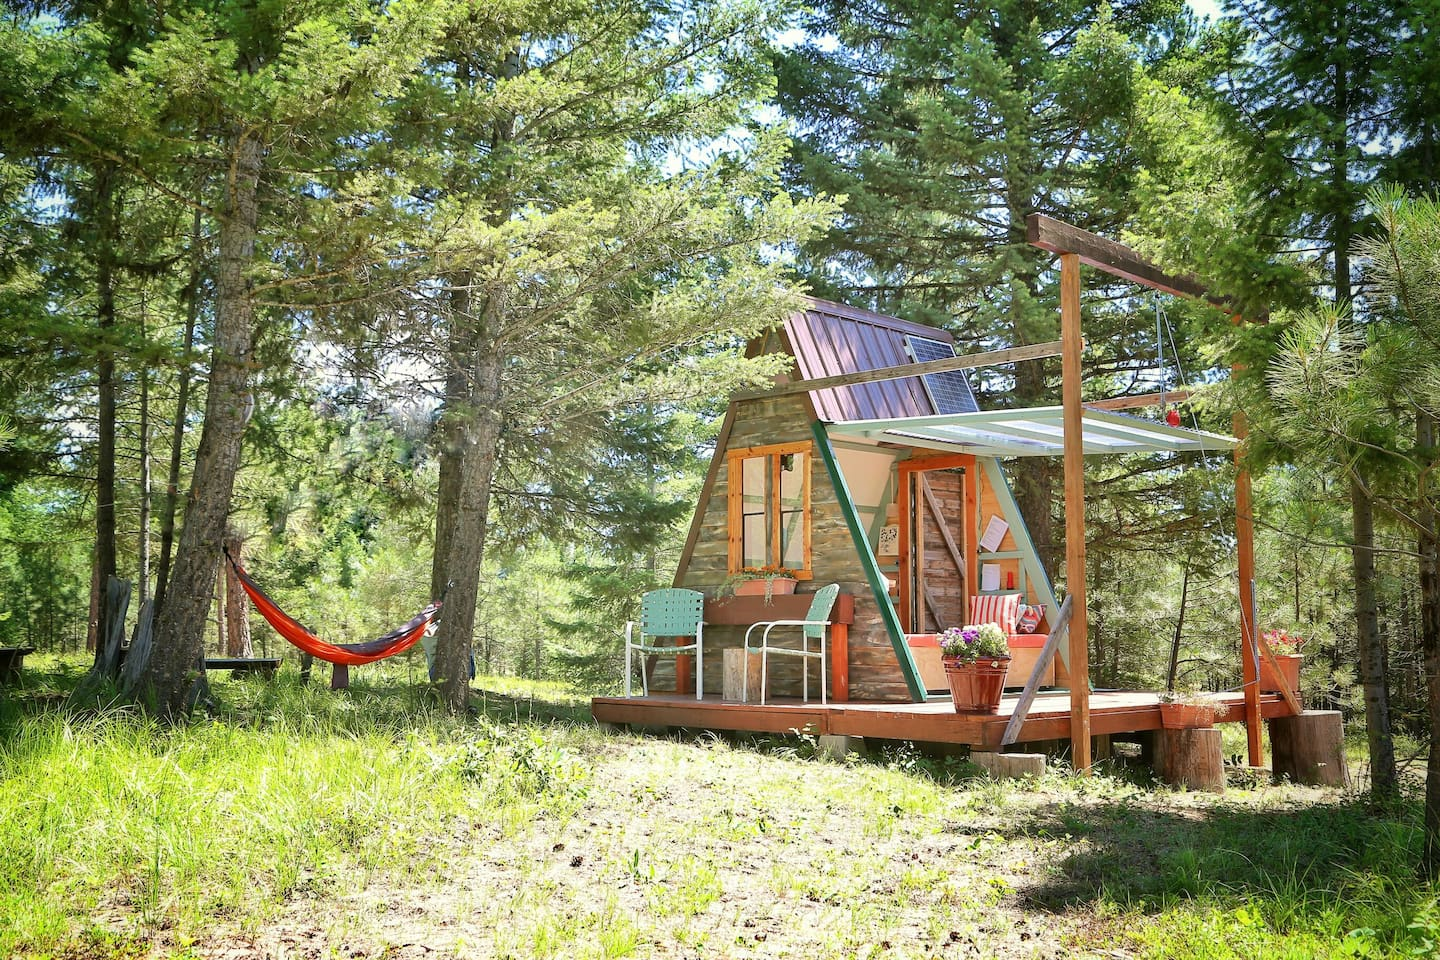 Photo of an A-Frame transforming tiny house Airbnb located in Montana.